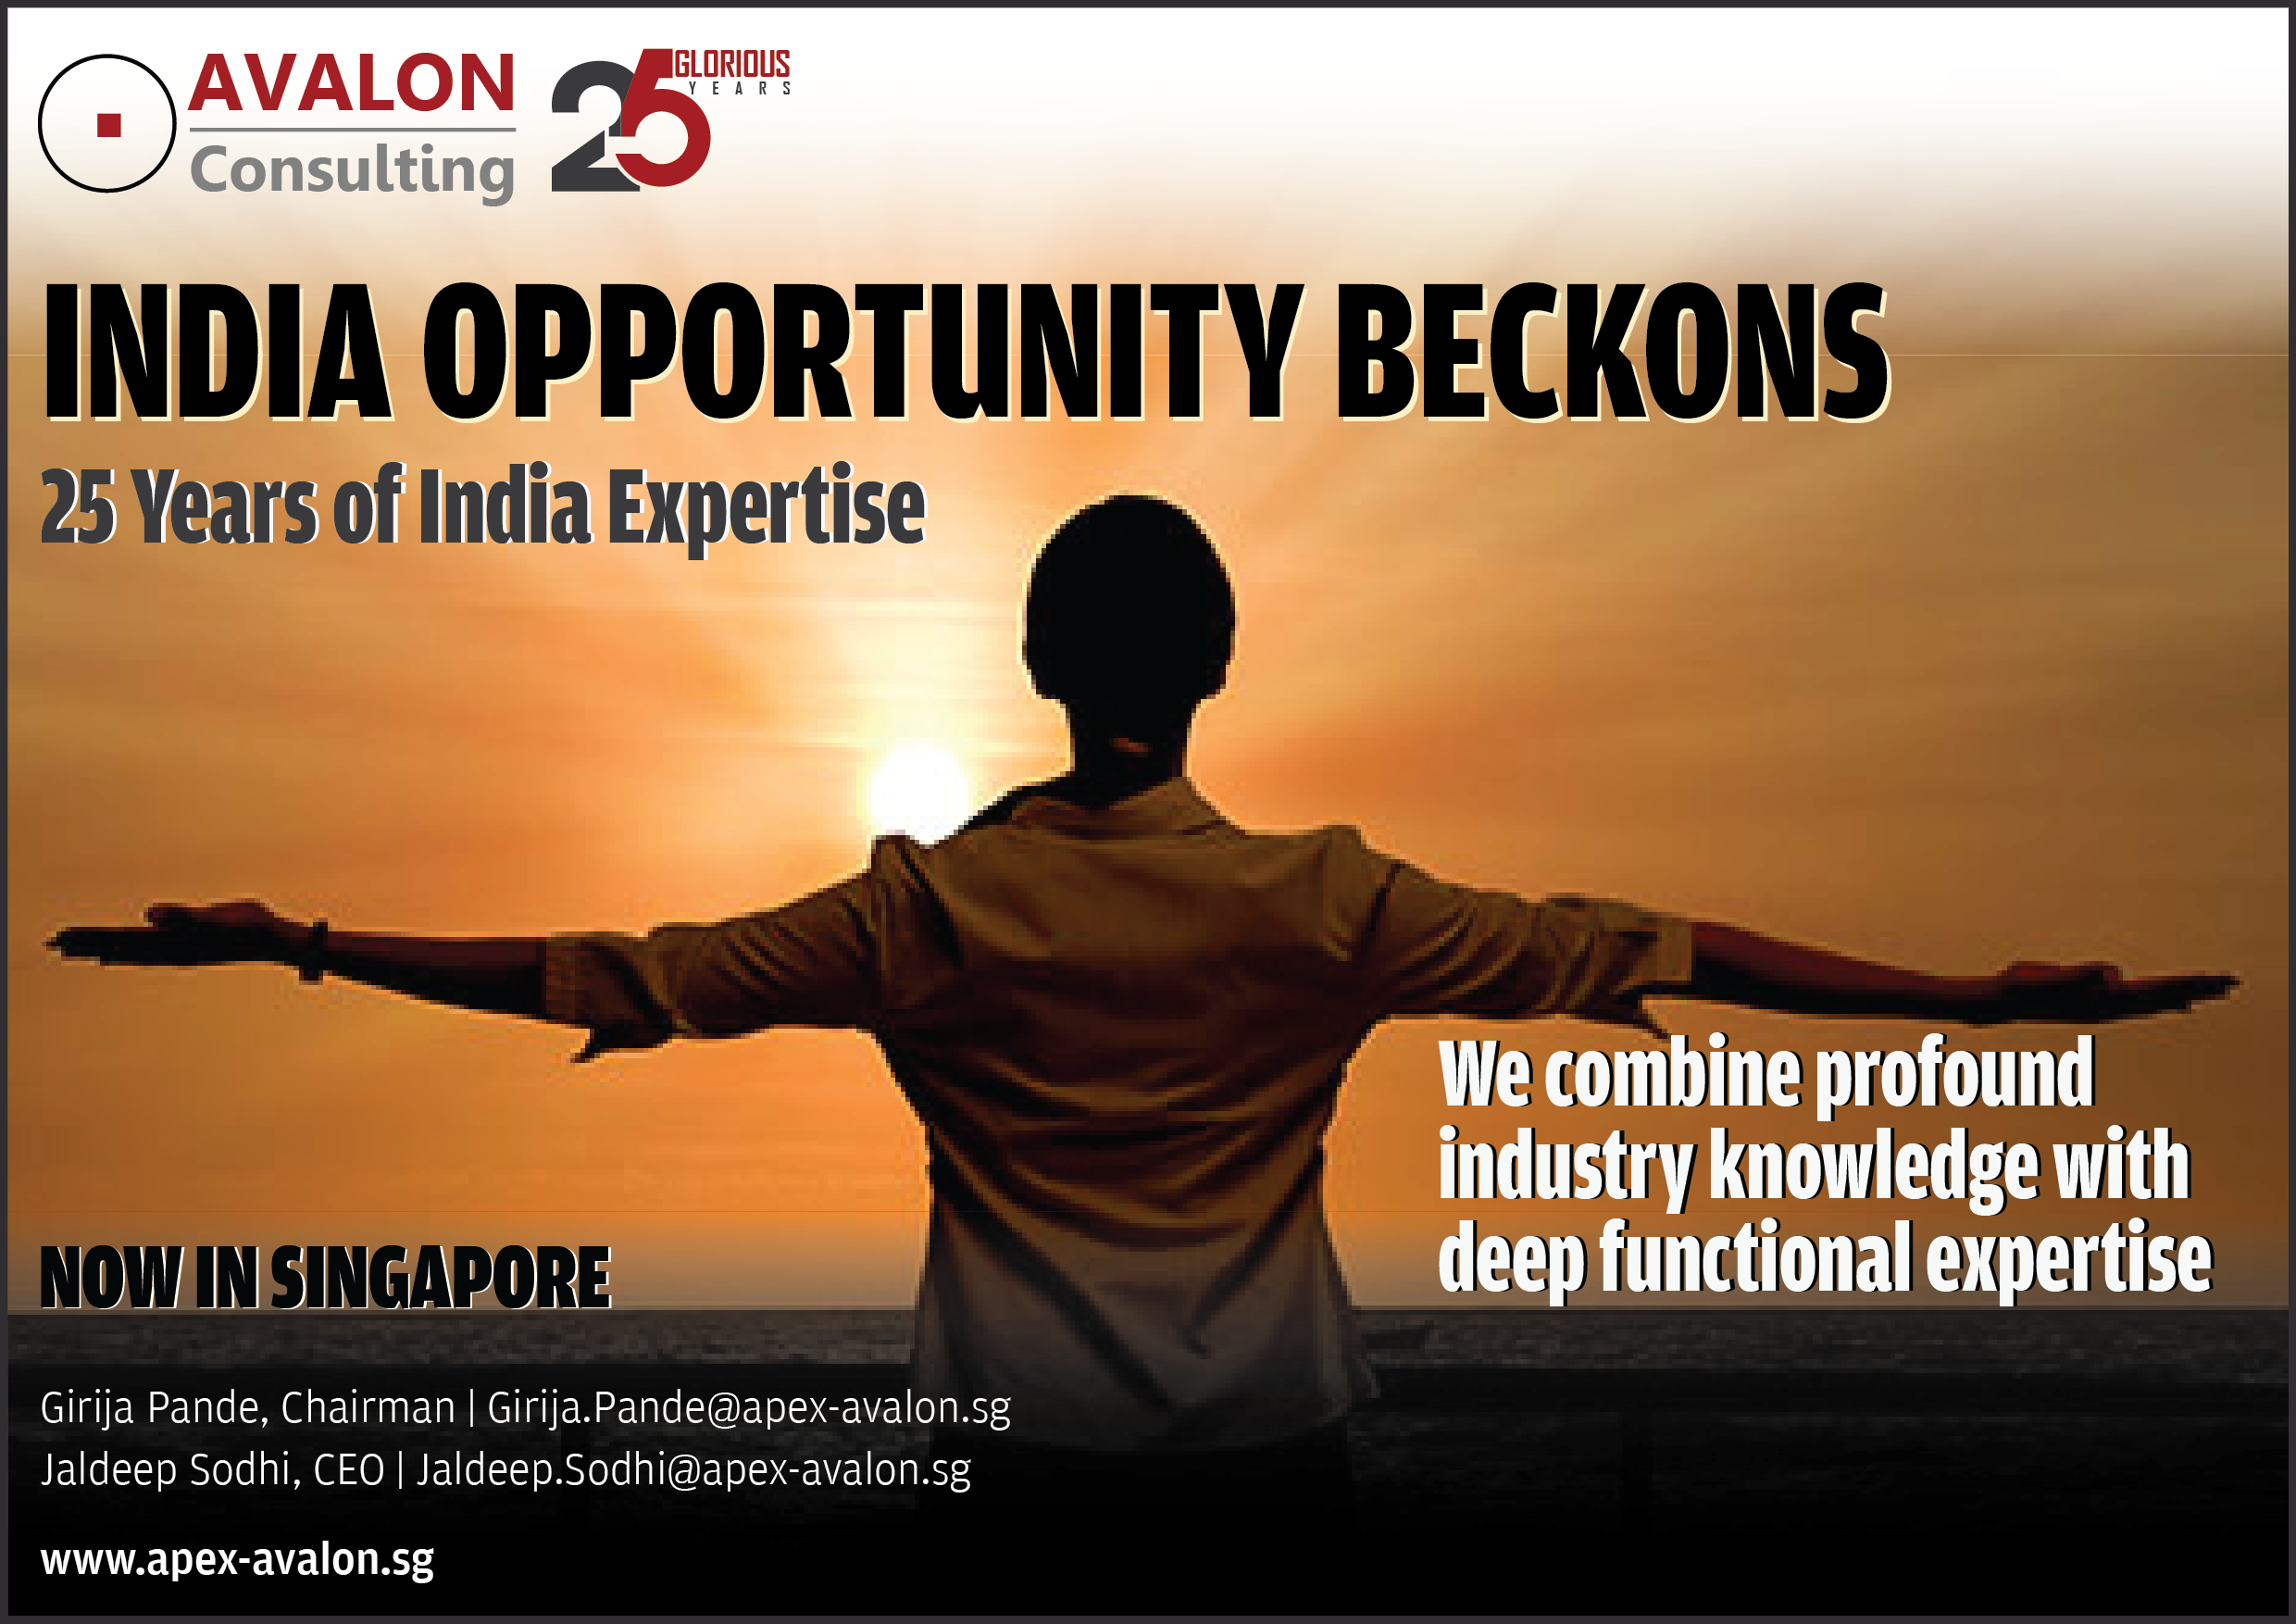 India opportunity beckons_Updated_Black-2 copy